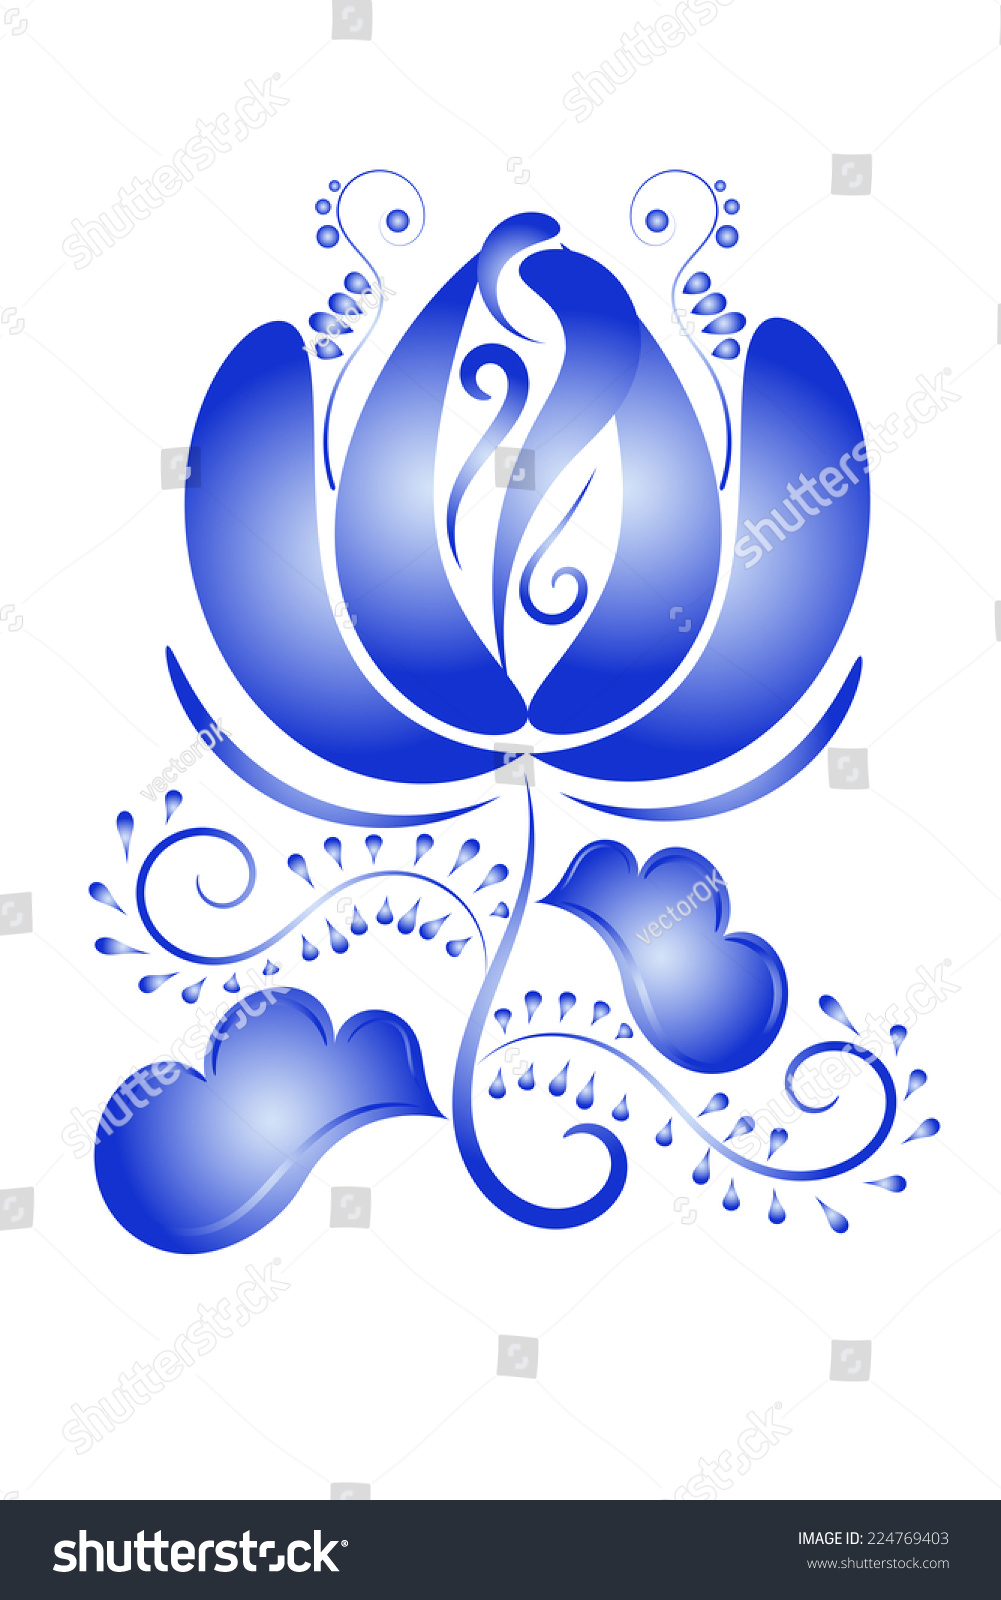 Artistic floral element abstract gzhel folk art blue flowers stock - Design Element Blue Flower In Gzhel Style Isolated On White Background Vector Illustration